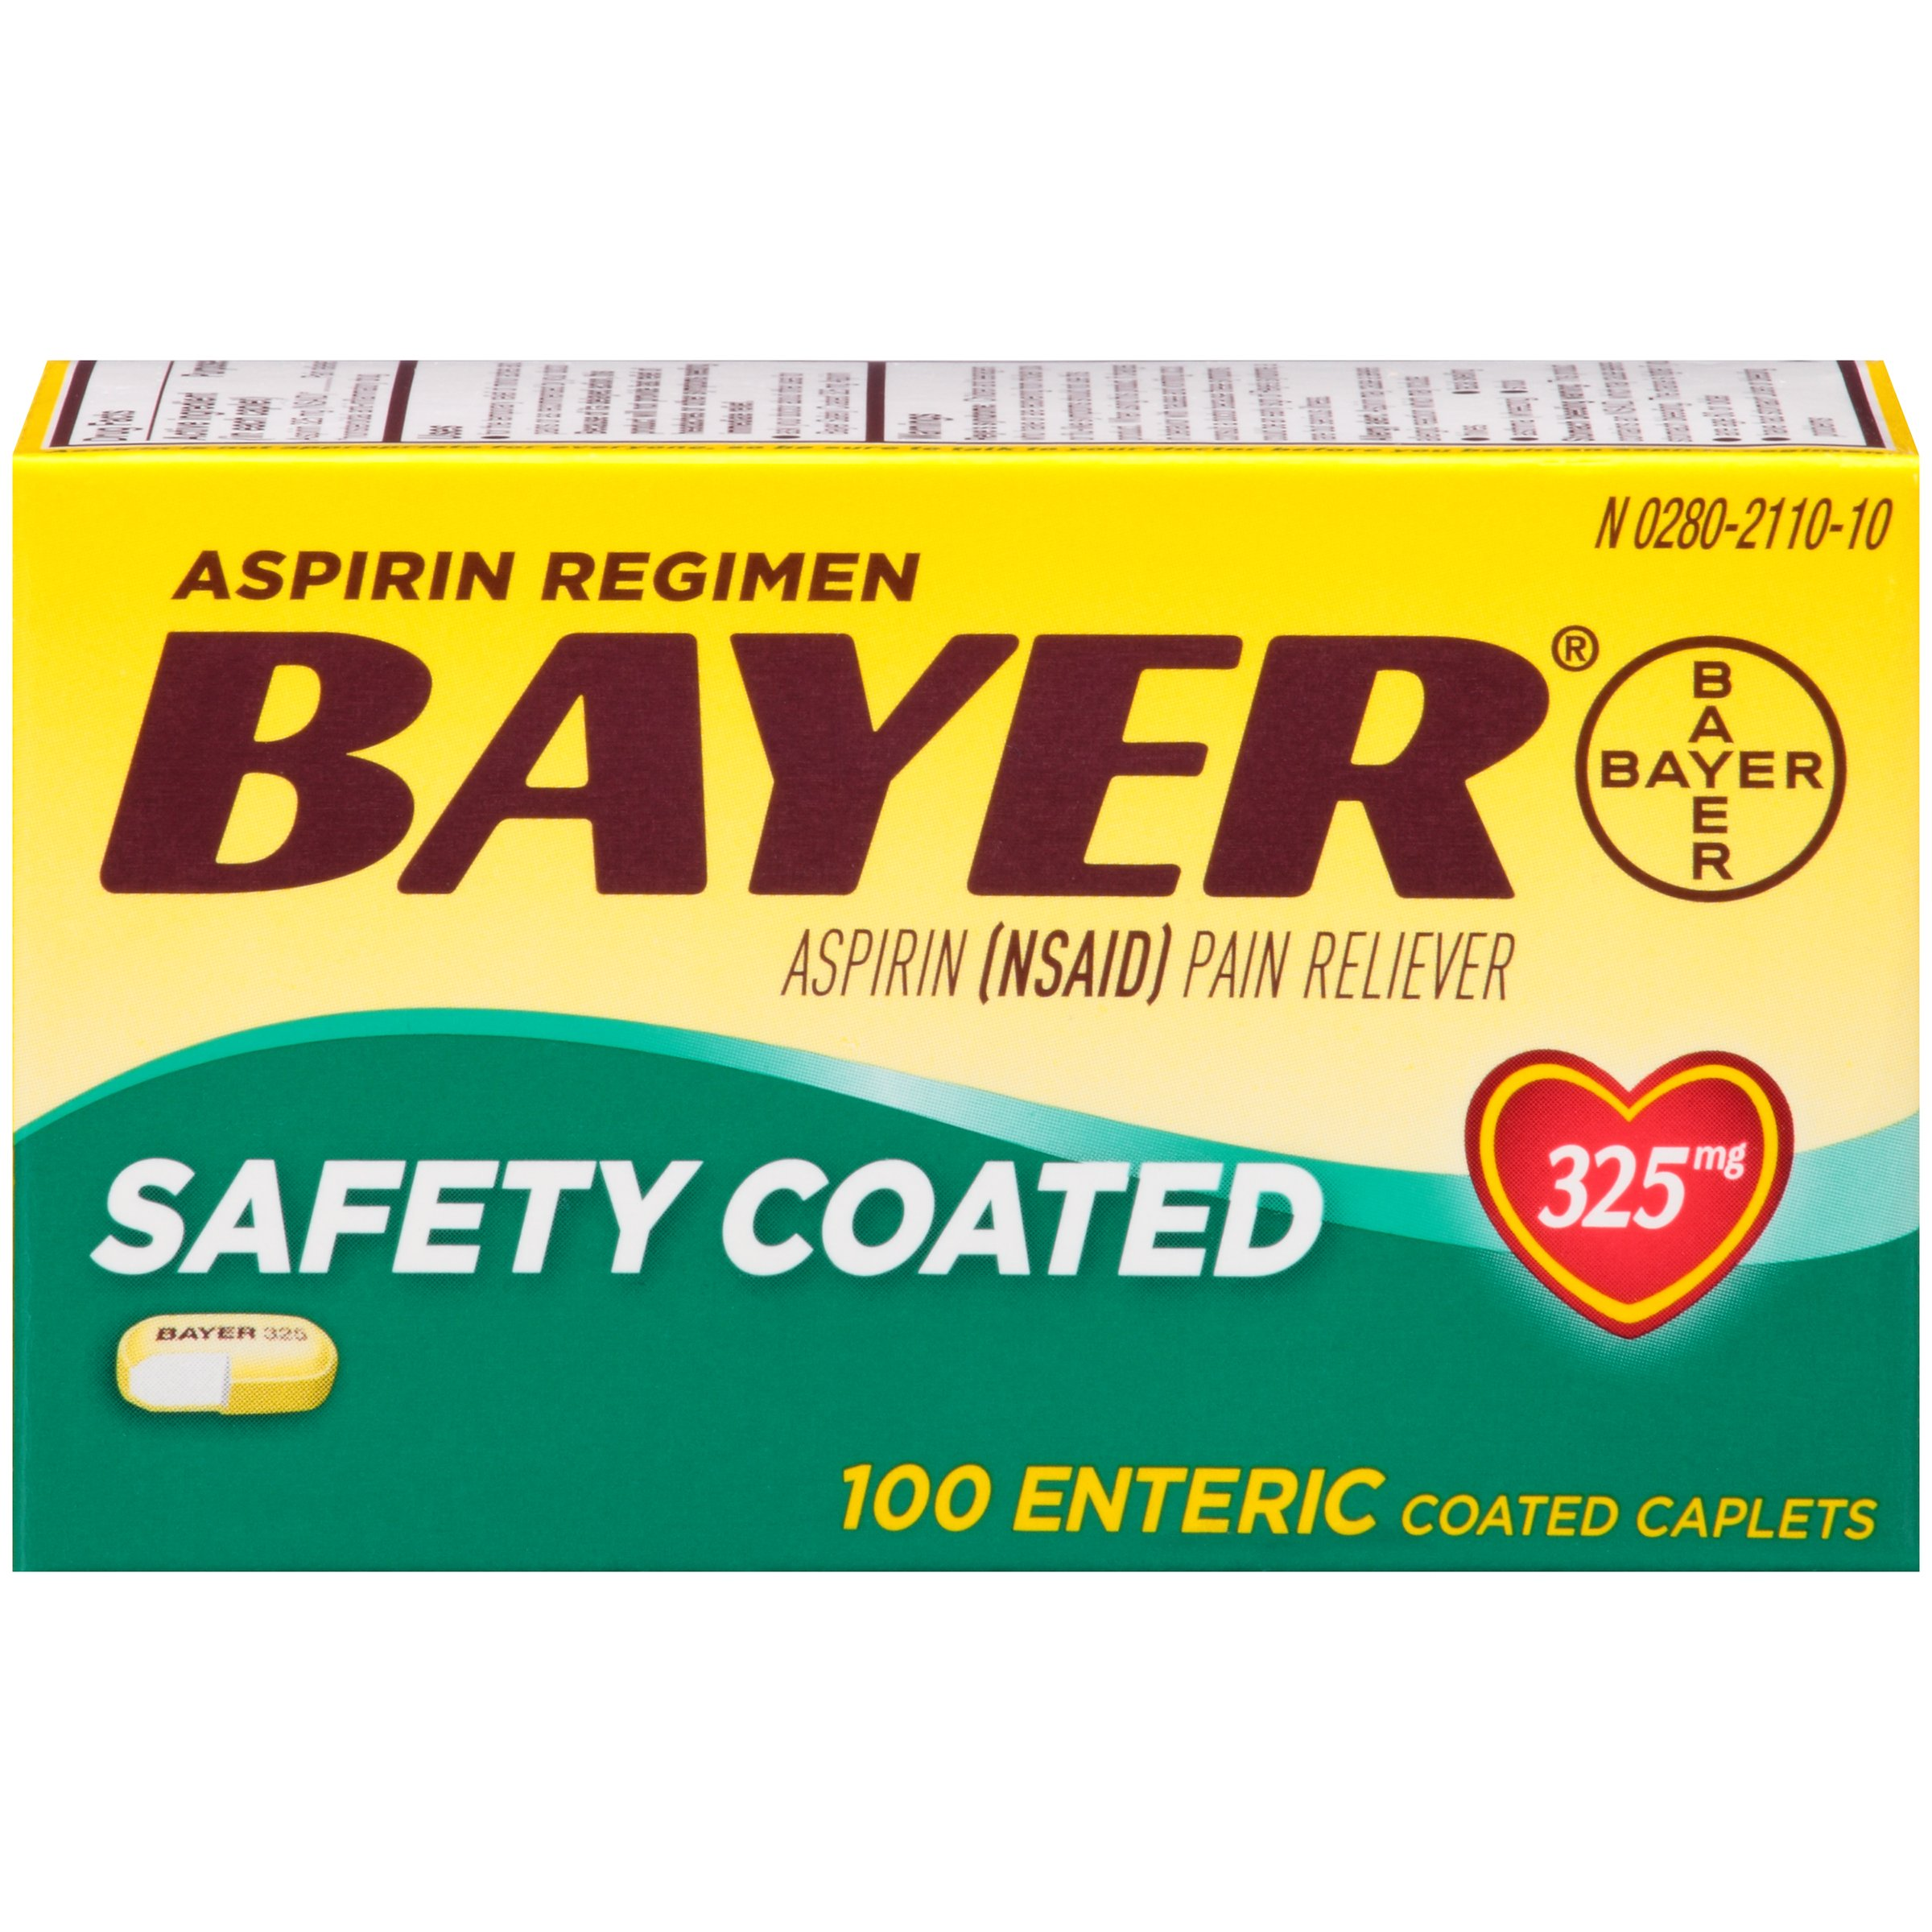 Bayer Safety Coated Aspirin 325 mg -100 Caplets, Pack of 6 by Bayer